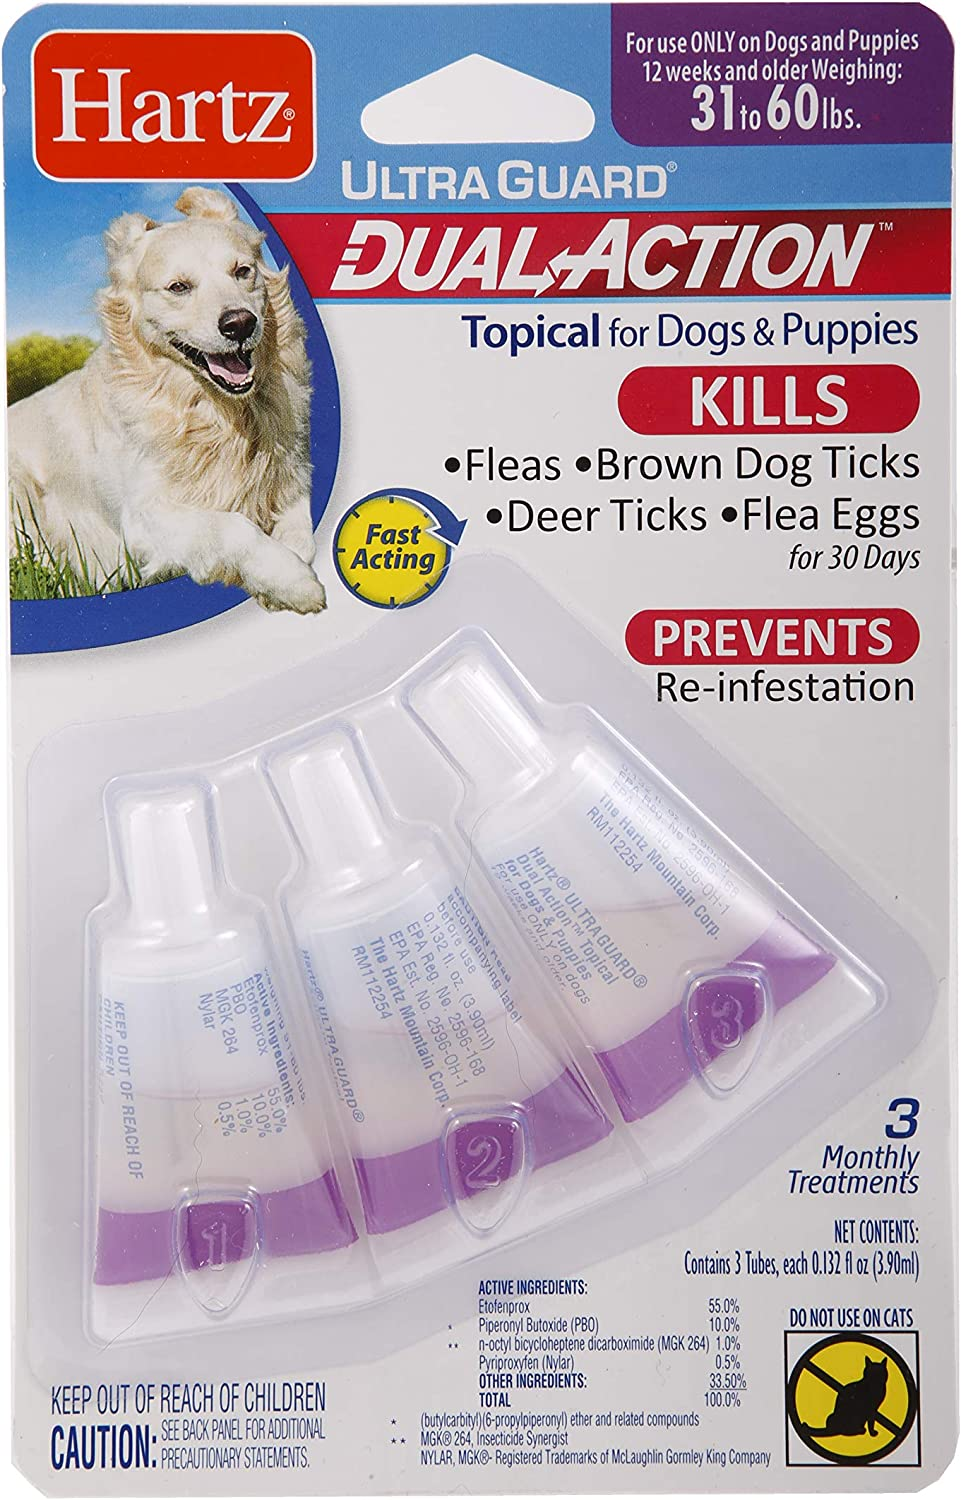 Hartz UltraGuard Dual Action Topical Flea & Tick Treatment for Dogs and Puppies - 31-60lbs, 3 Monthly Treatments